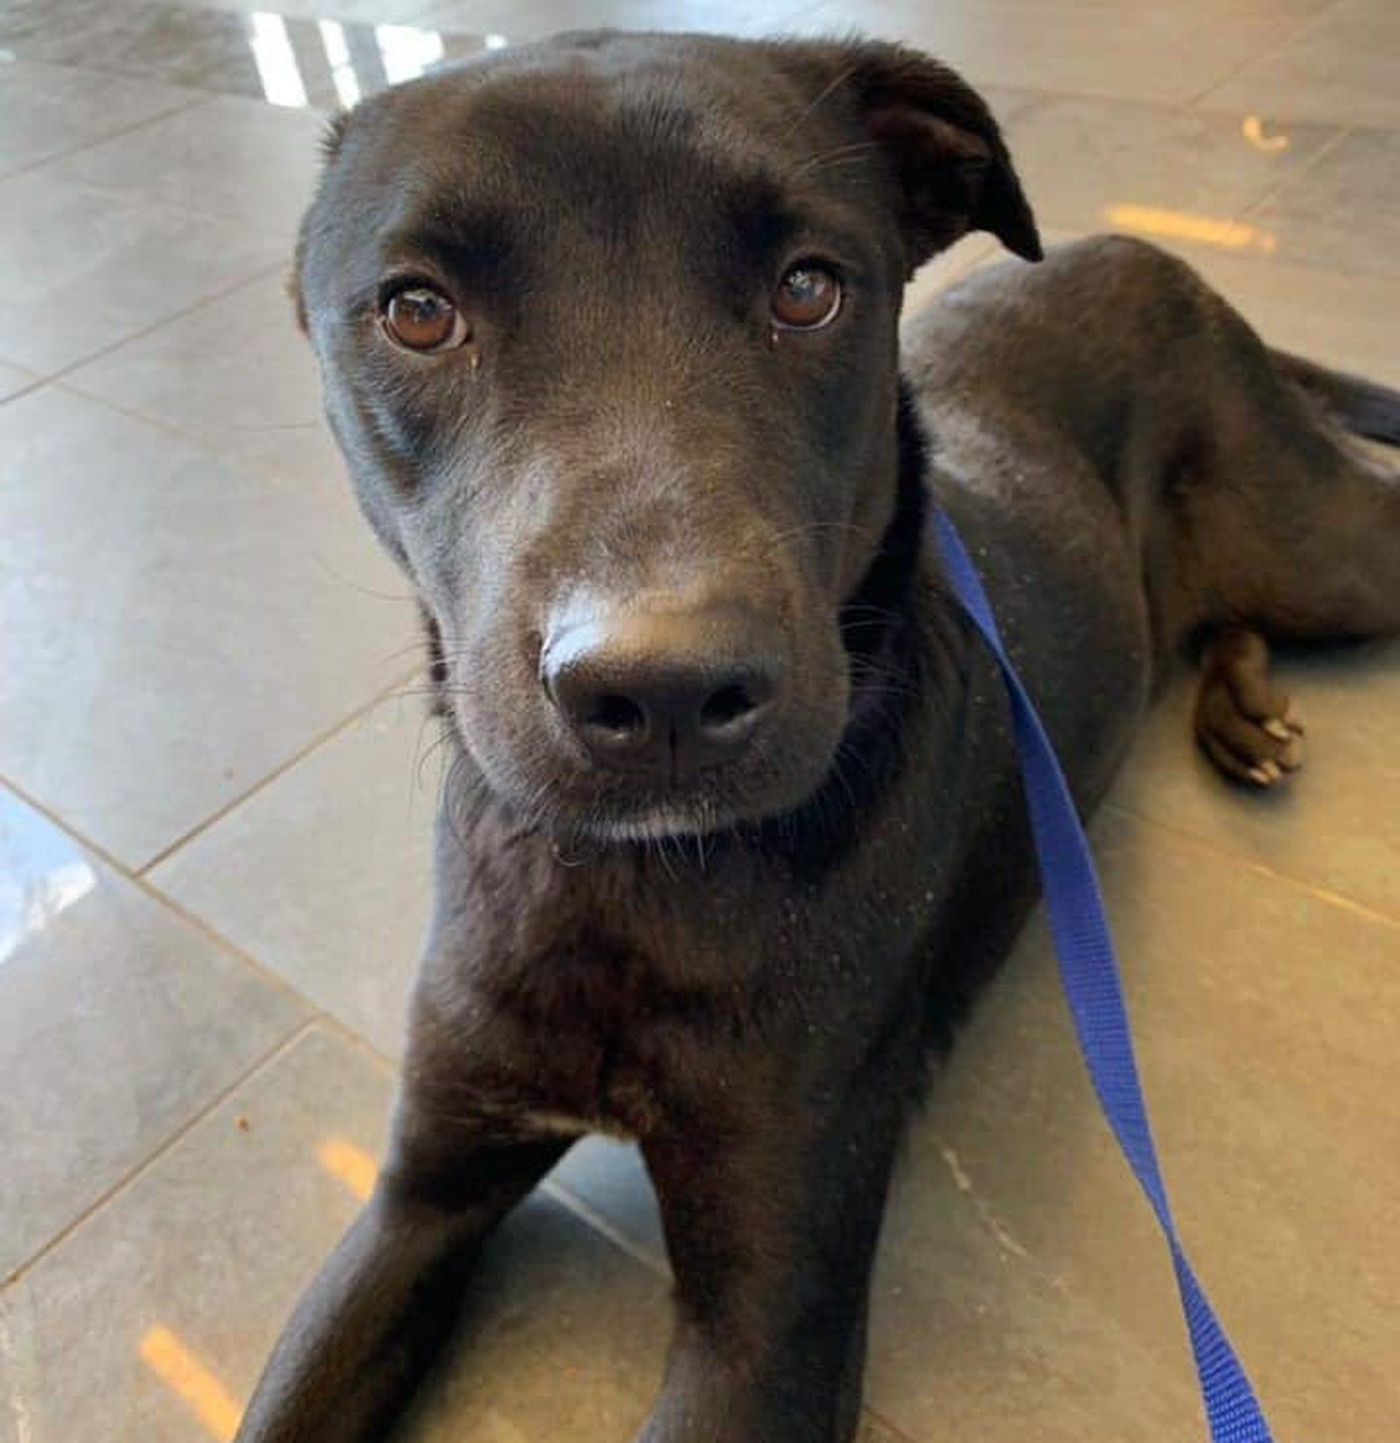 KCBD's Pet of the Day: Meet Shadow